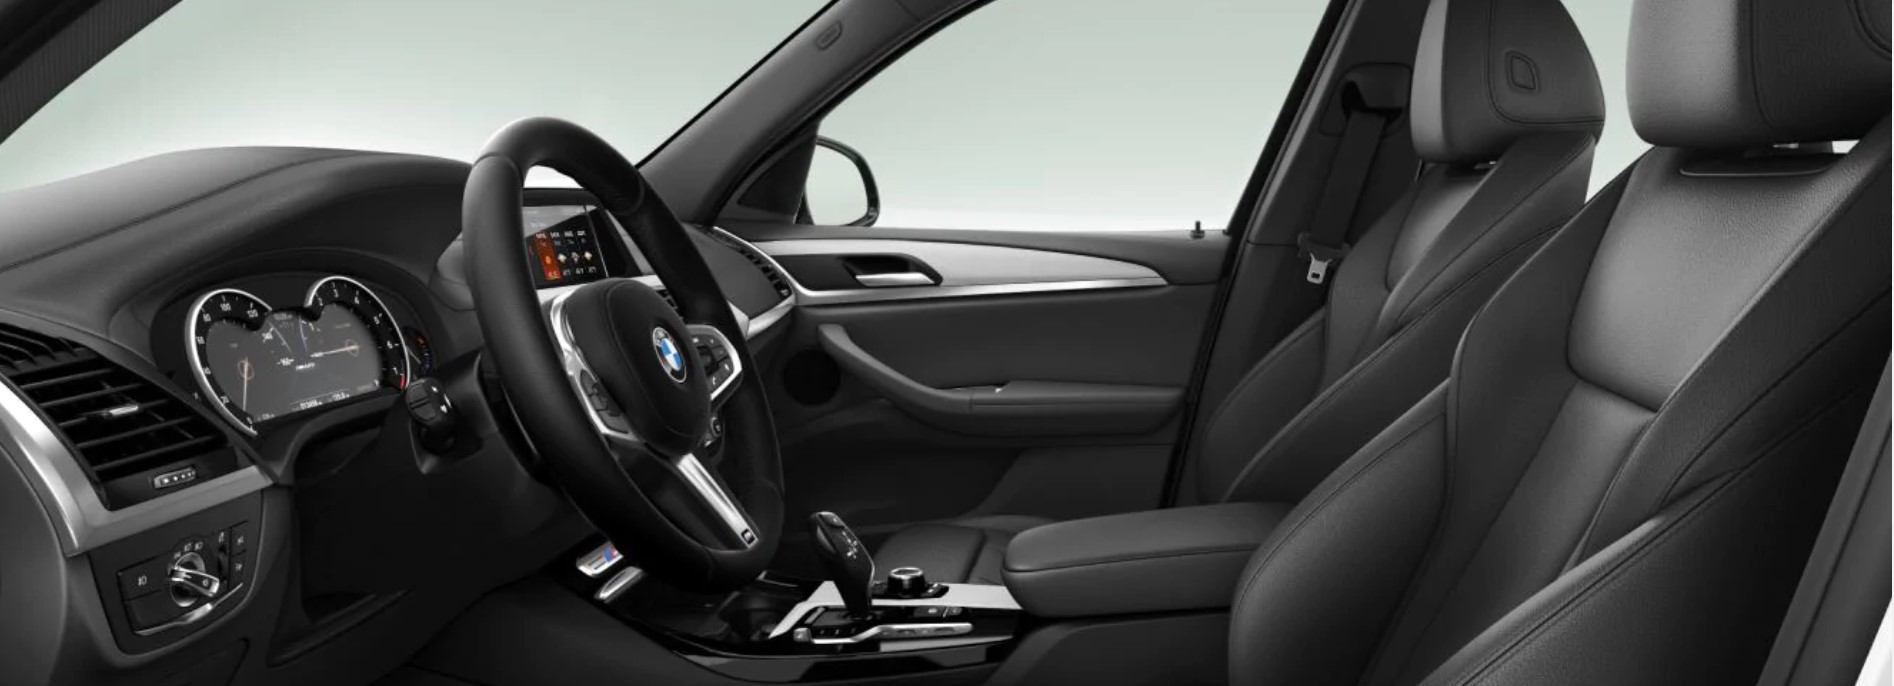 Lease A 2019 Bmw X3 M40i Sterling Bmw Best Rated Bmw Dealer In Oc